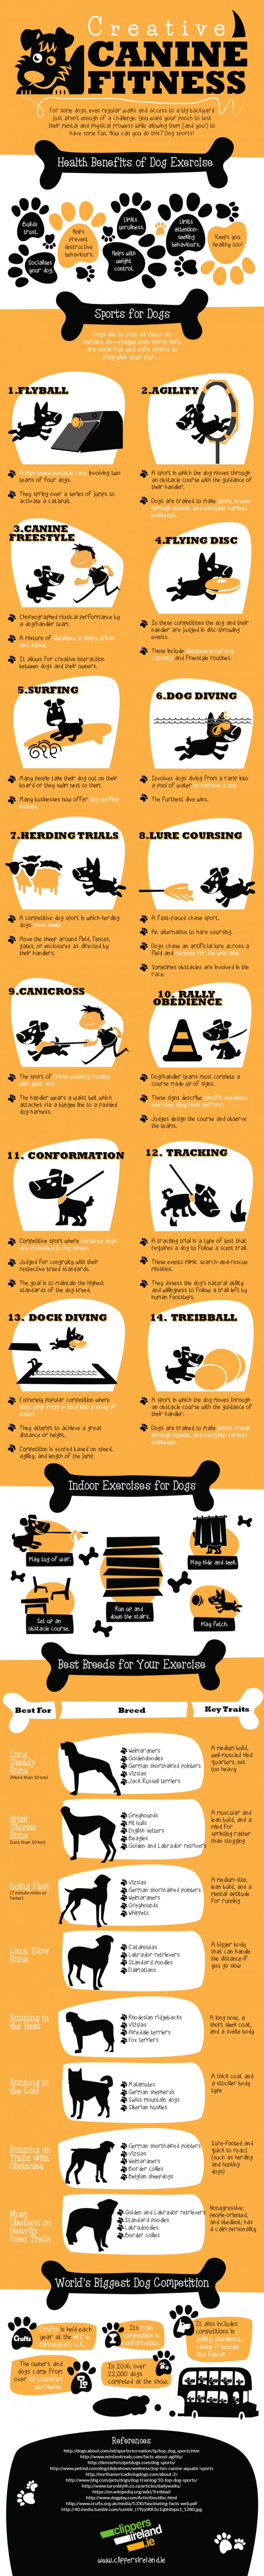 Fun Ways To Keep Your Dog Active!